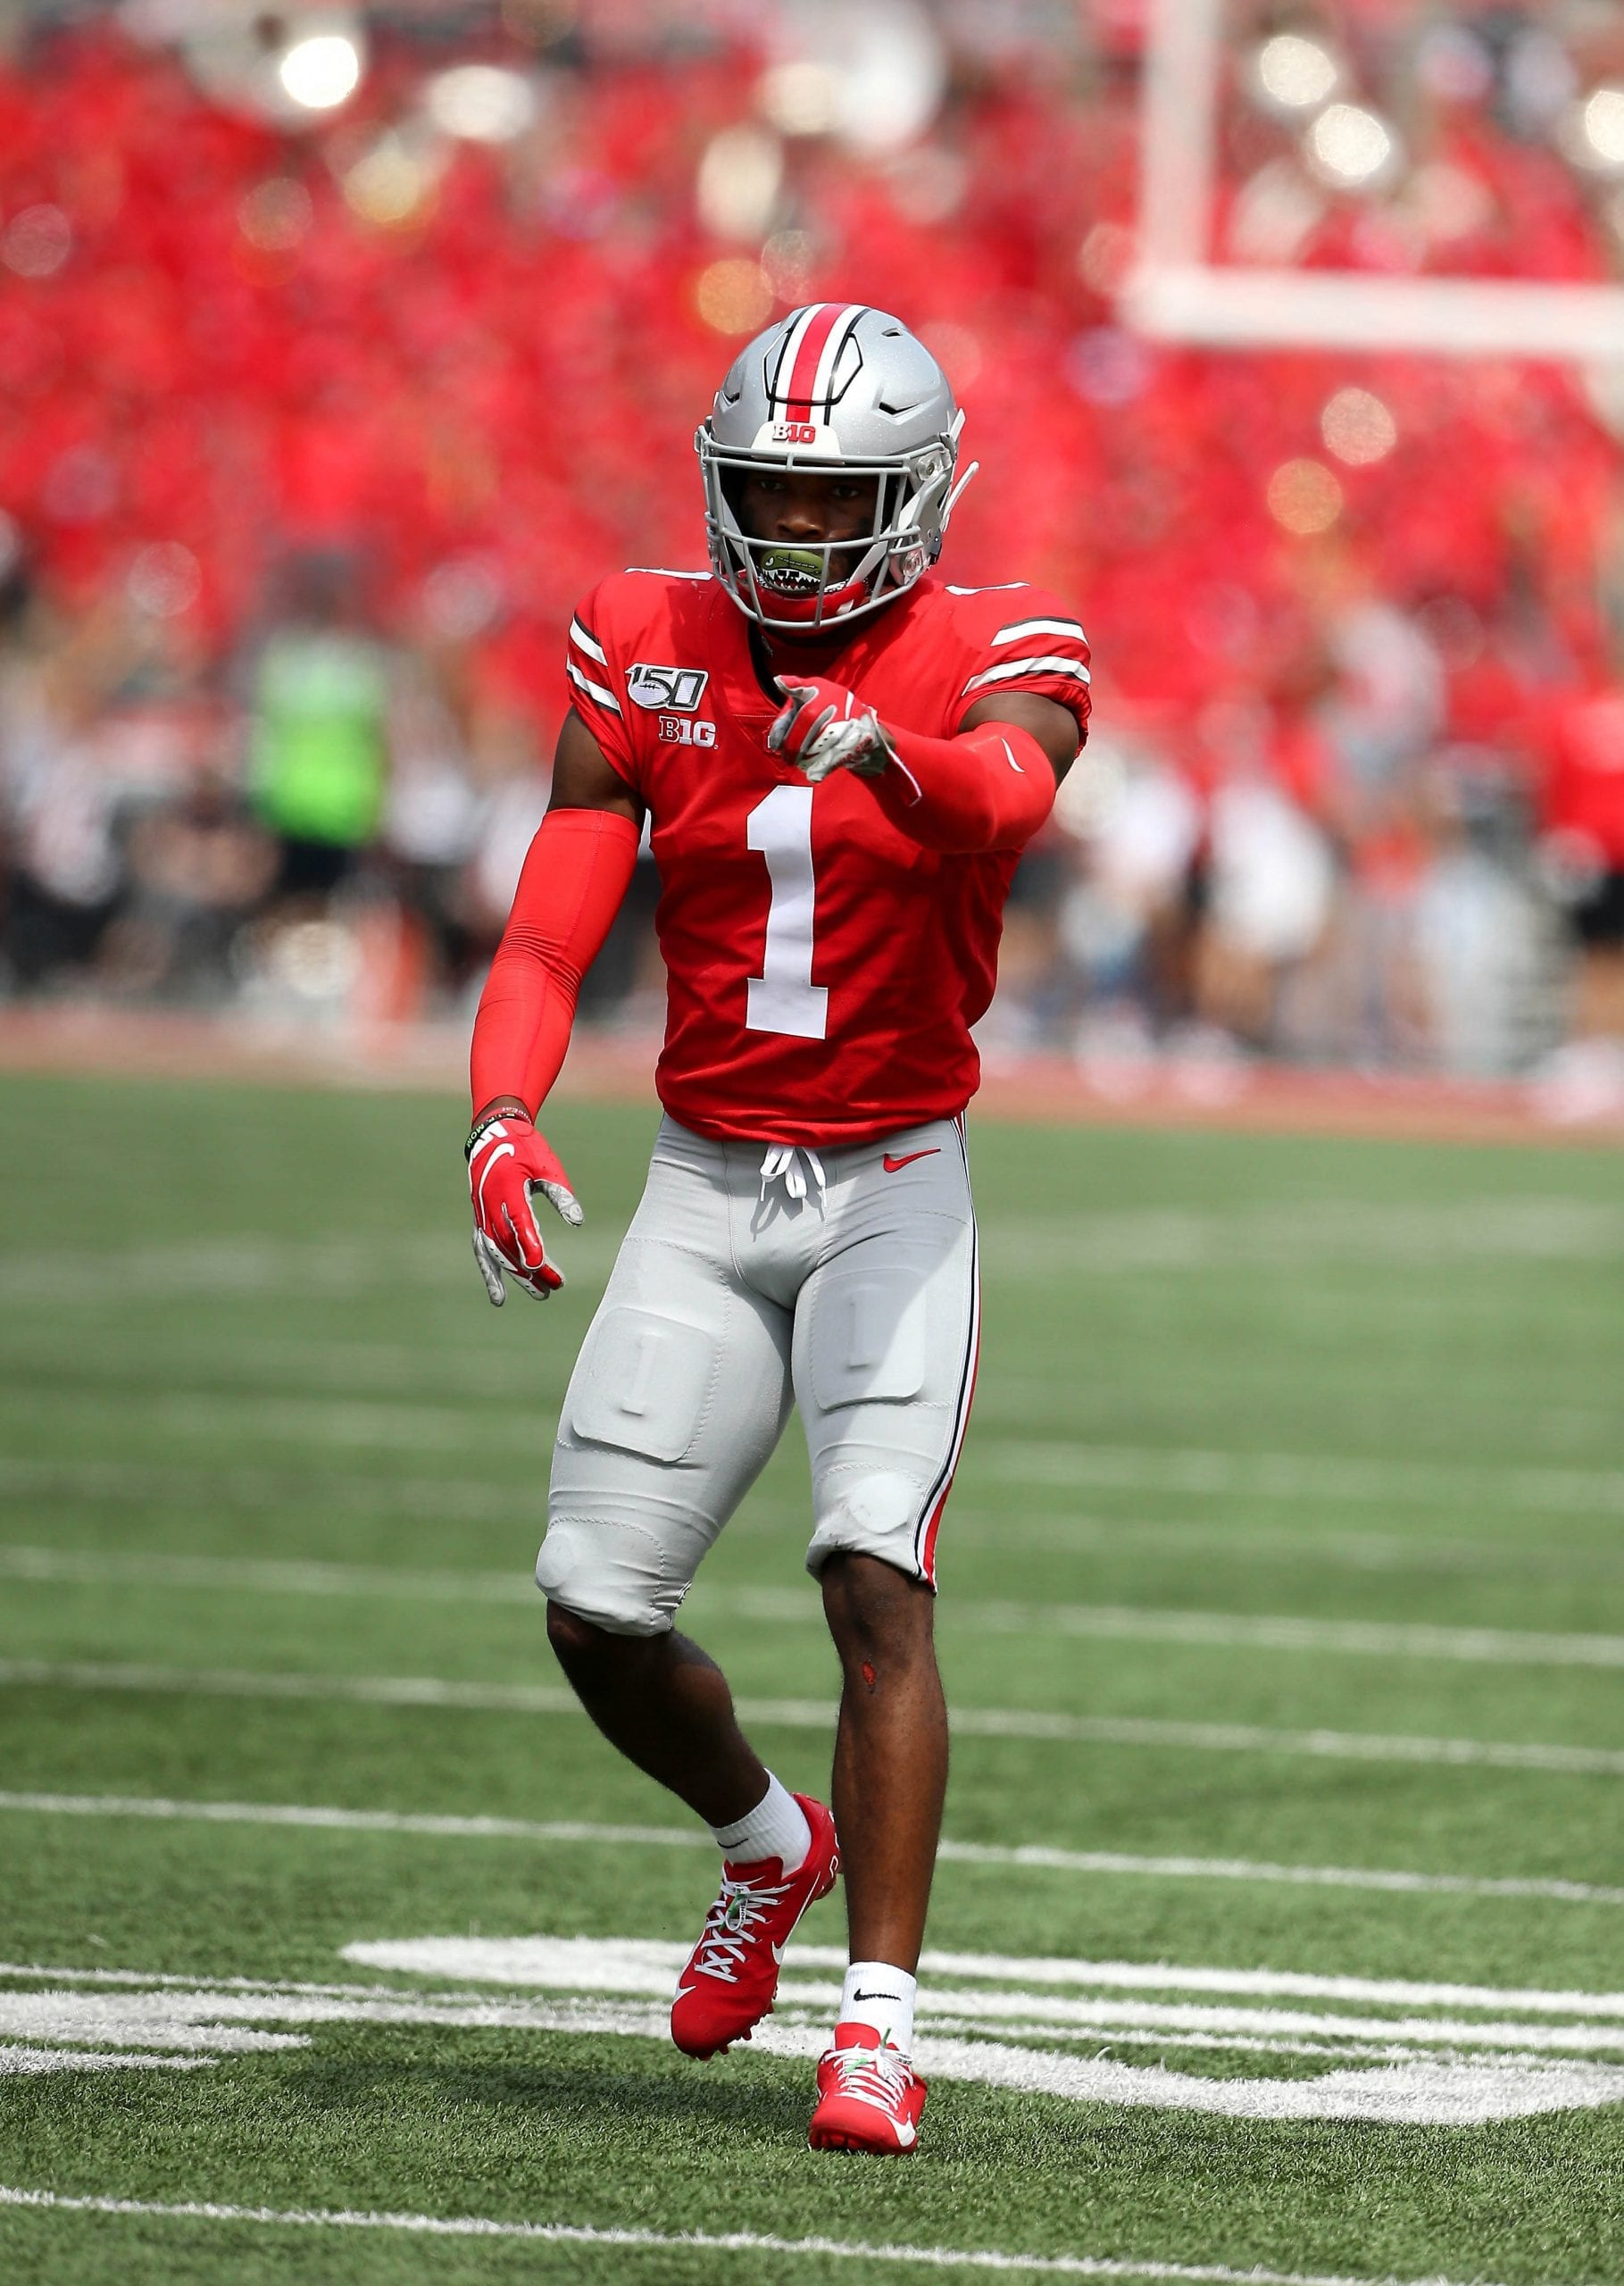 Can Ohio State Win CFB playoff? via @PhillyWhat